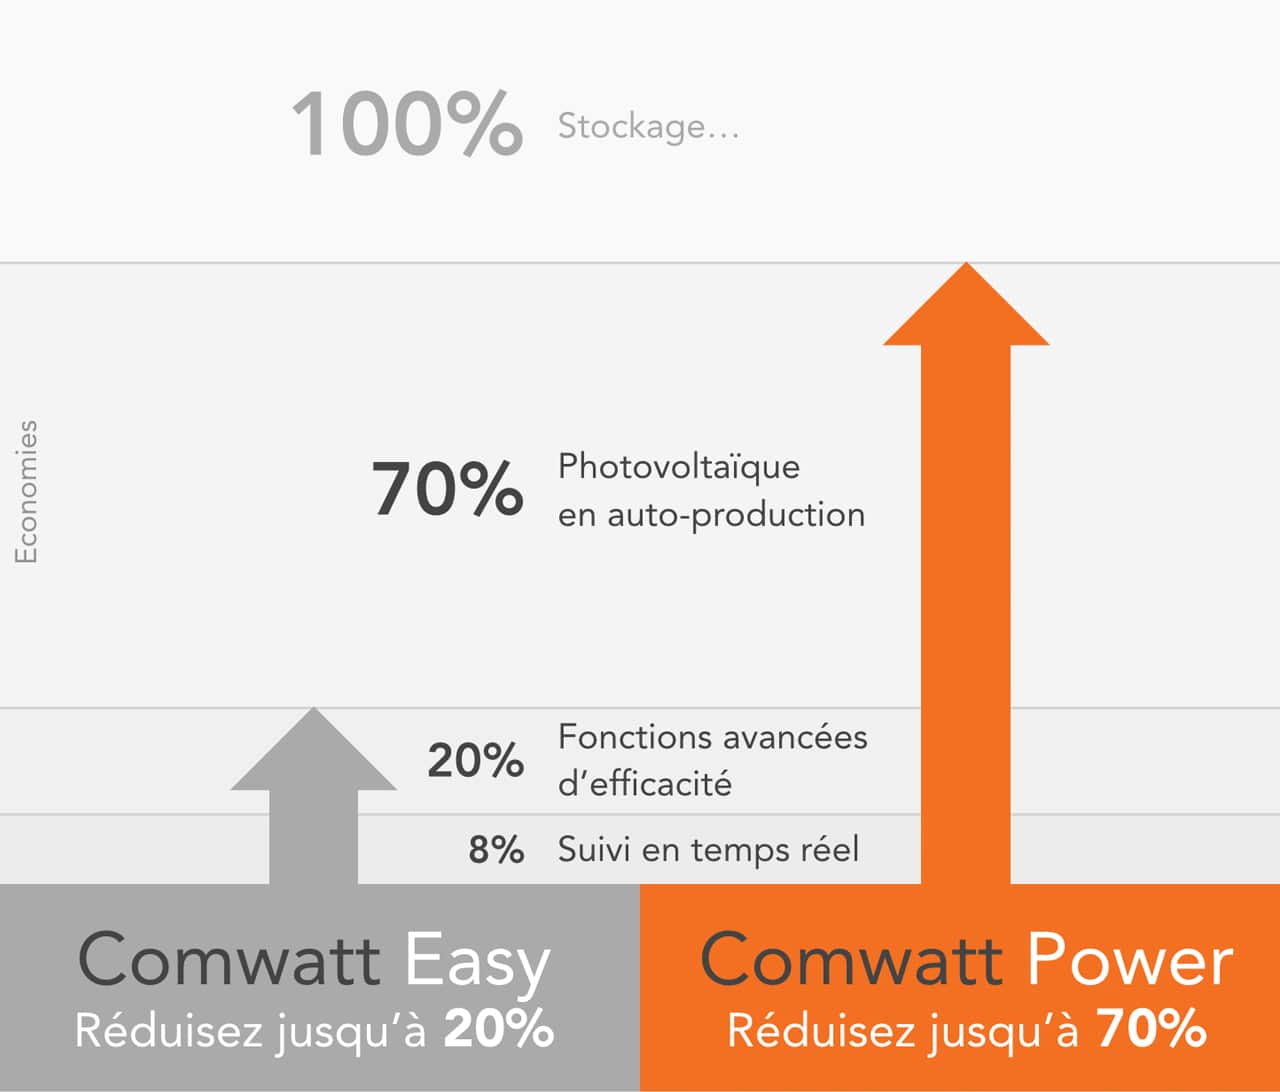 Performance Comwatt Power